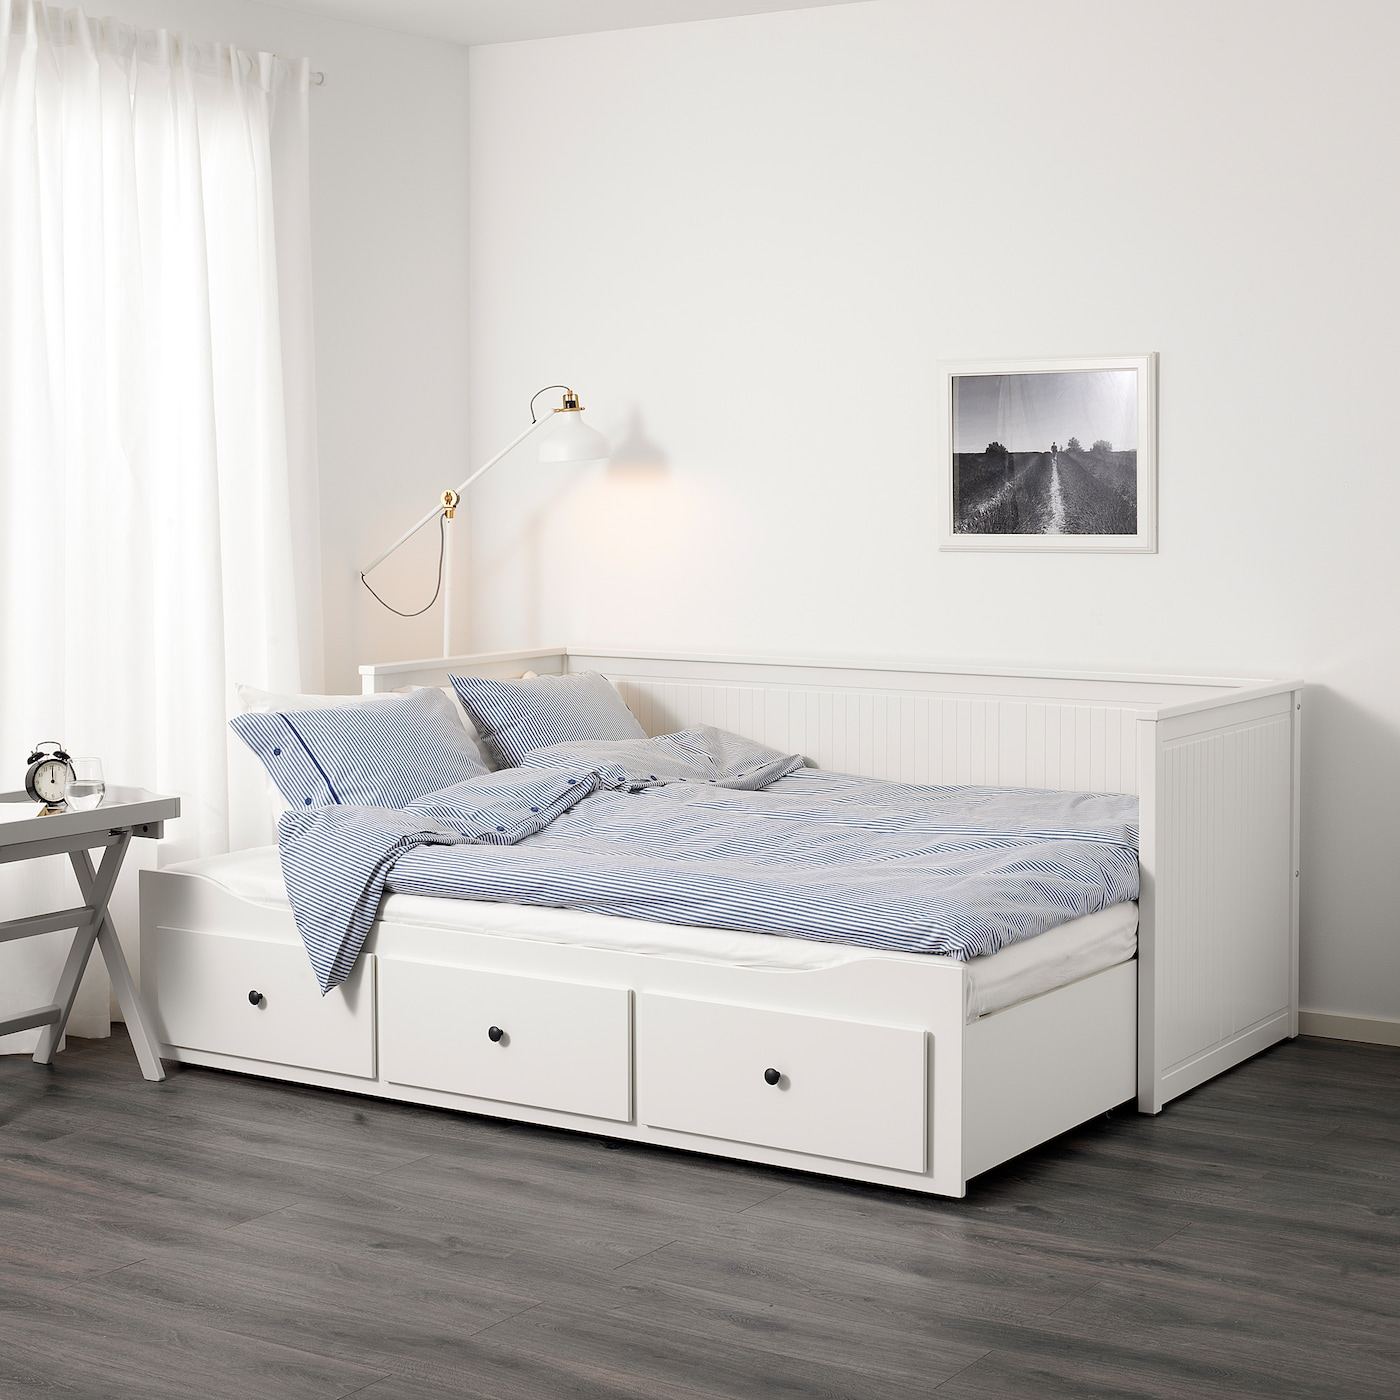 Slaapbank Hemnes Ikea.Hemnes Day Bed W 3 Drawers 2 Mattresses White Husvika Firm Ikea